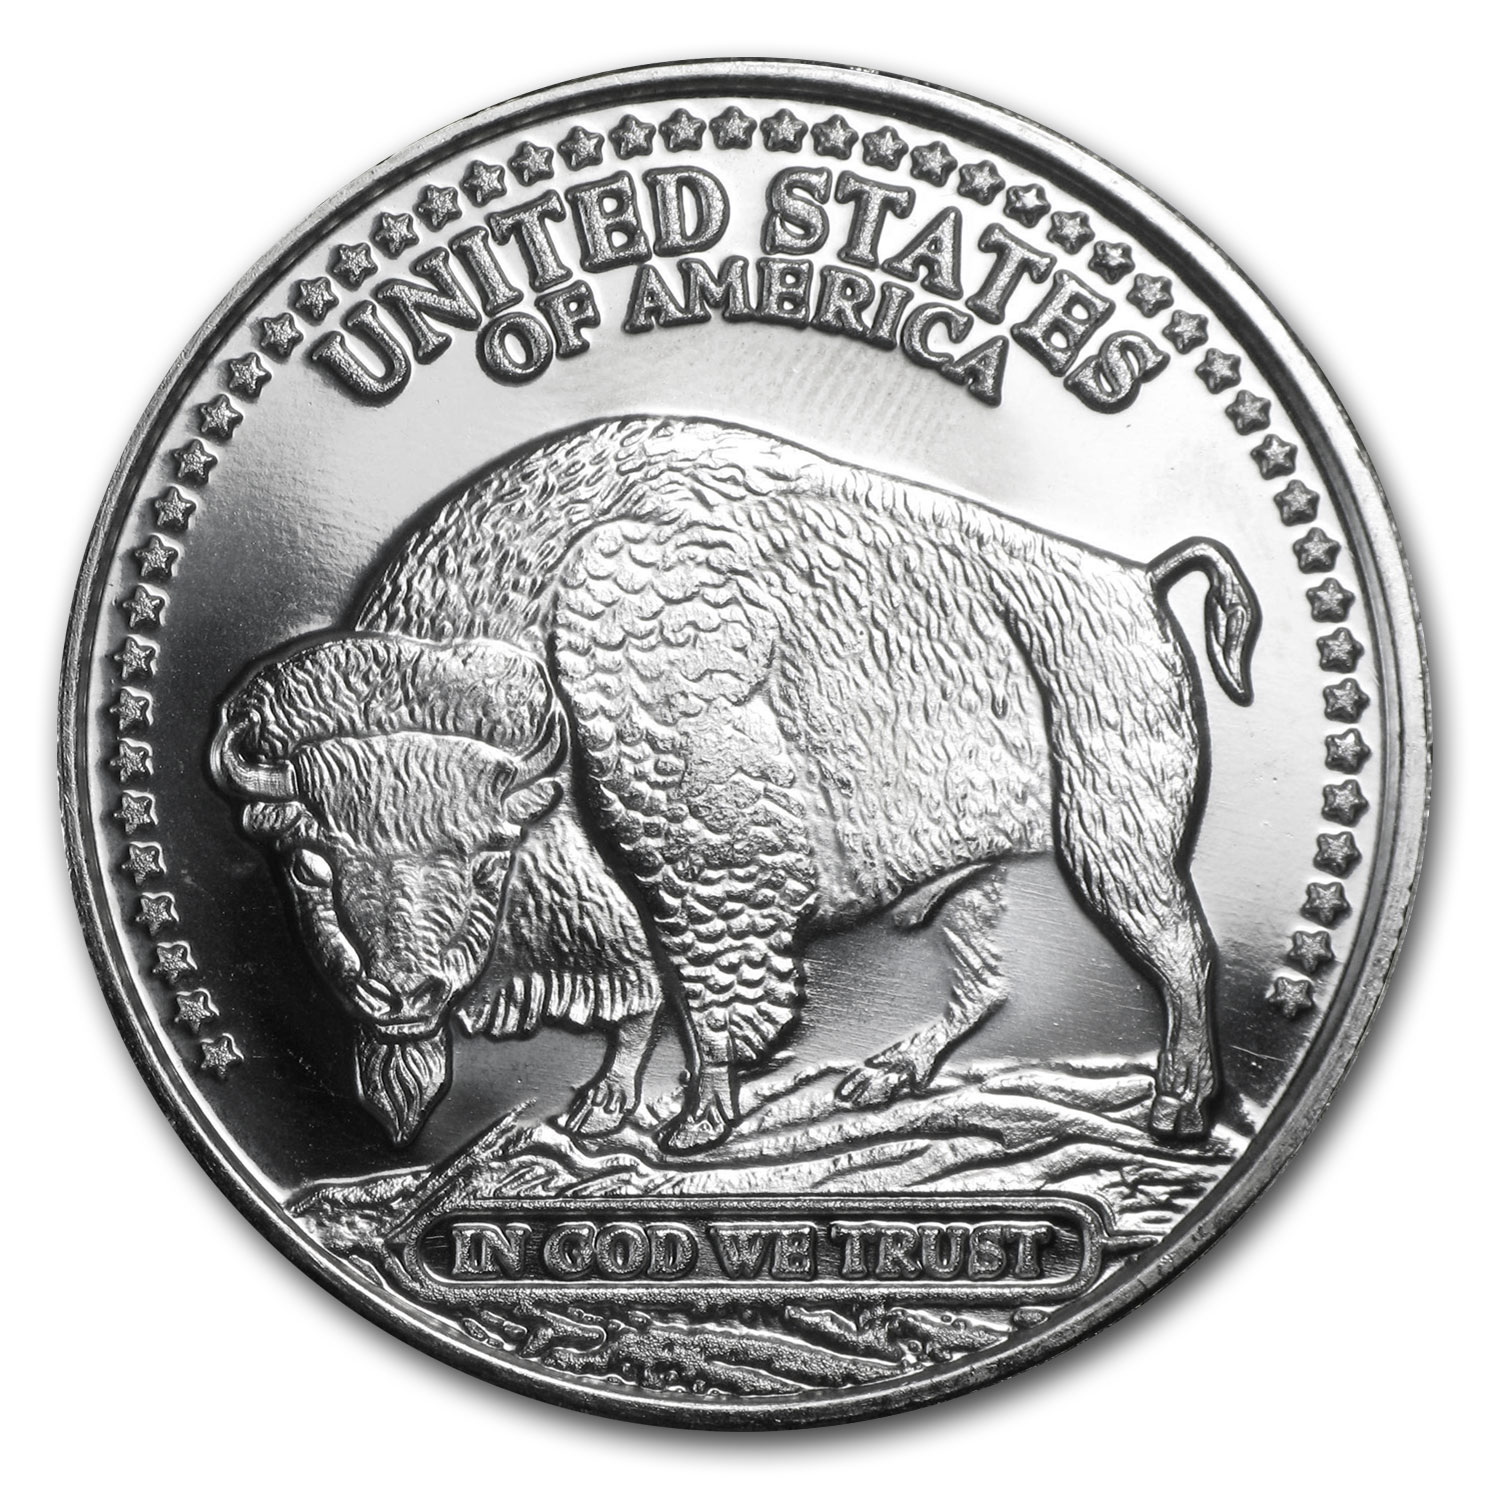 1 oz Silver Rounds - Running Antelope/Bison